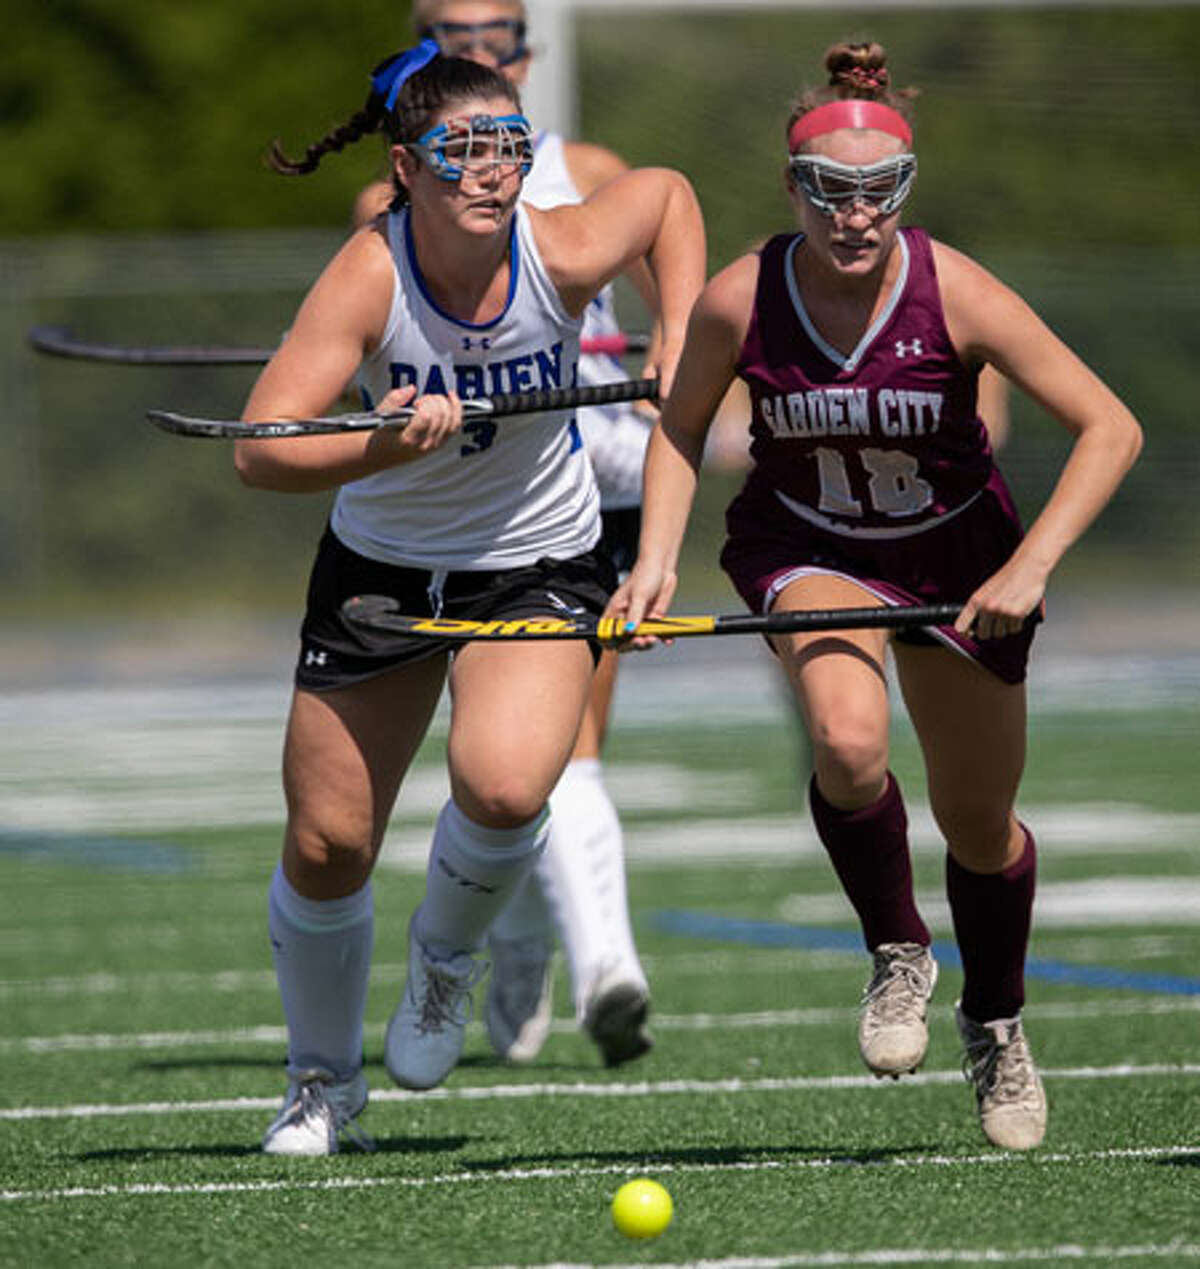 Catie Duggan races up field during the Blue Wave's field hockey game against Garden City on Saturday. - Darien Athletic Foundation photo